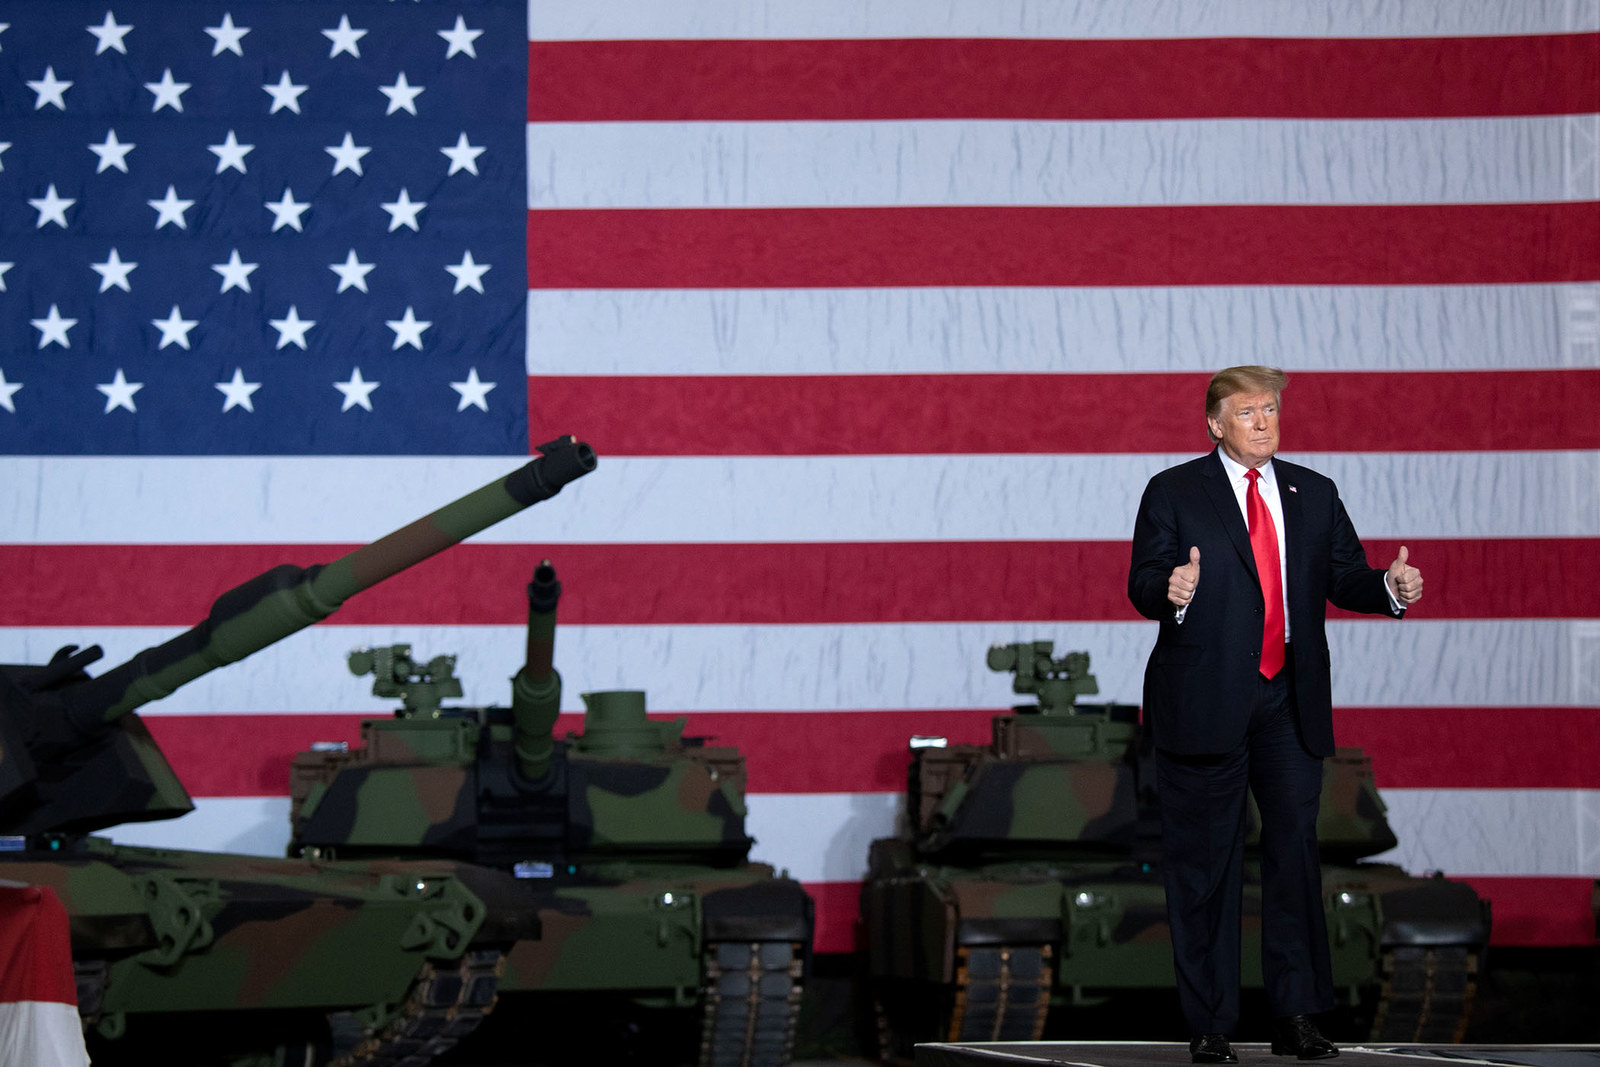 President Donald Trump arrives to speak after touring the Lima Army Tank Plant in Lima, Ohio, on March 20.